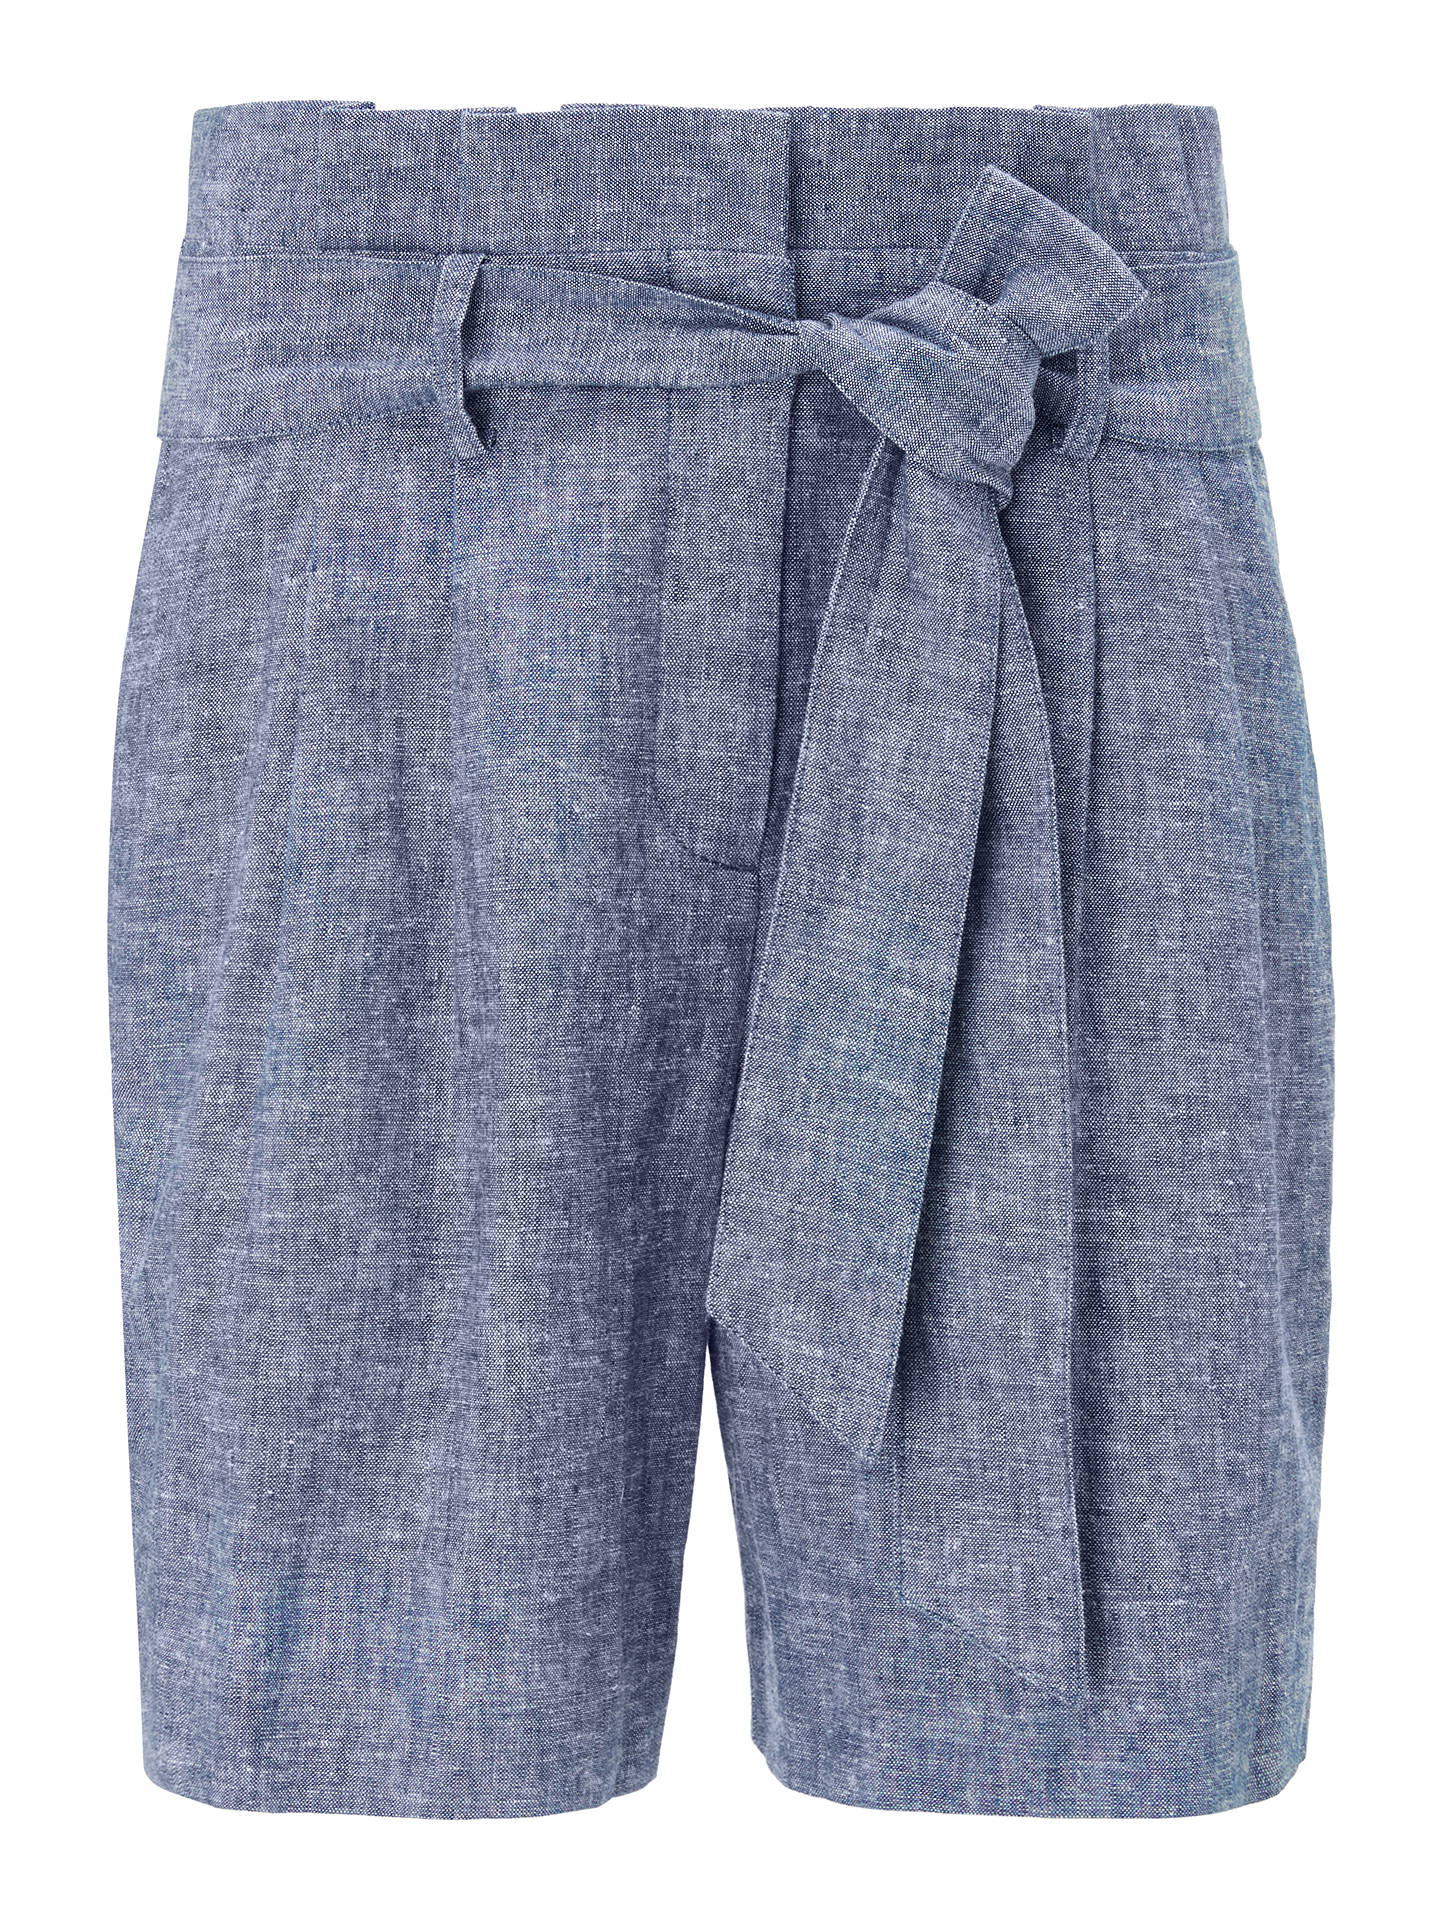 Buy Boden St Ives Paperbag Shorts, Light Chambray, 12 Online at johnlewis.com